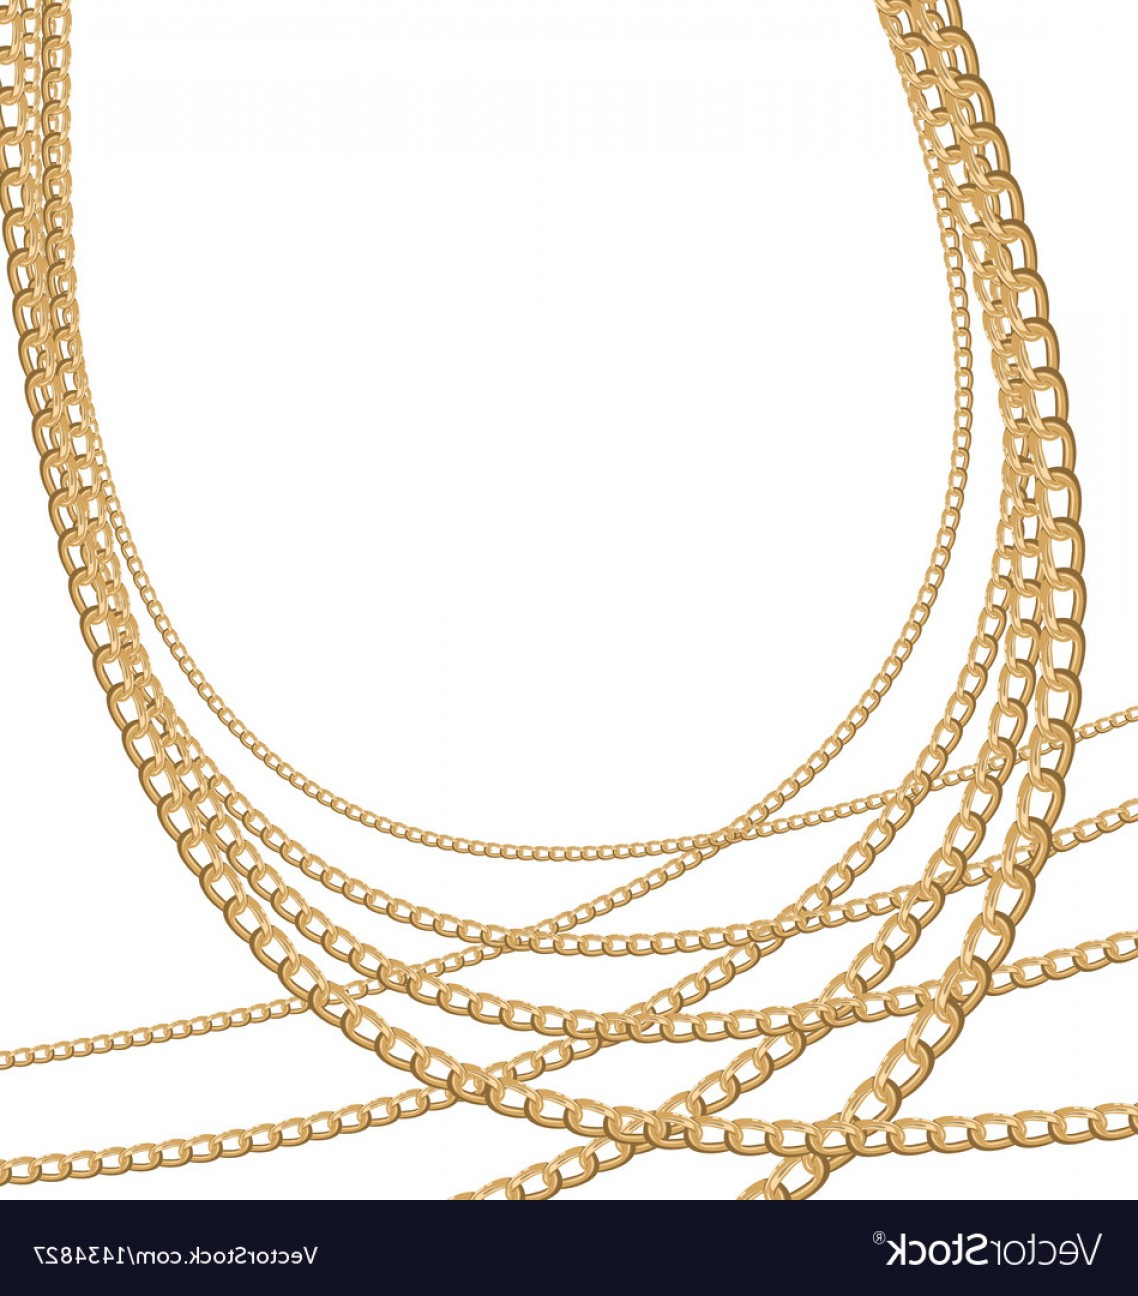 Necklace Vector Chain Grapicts: Set Jewelry Gold Chains Different Size Vector